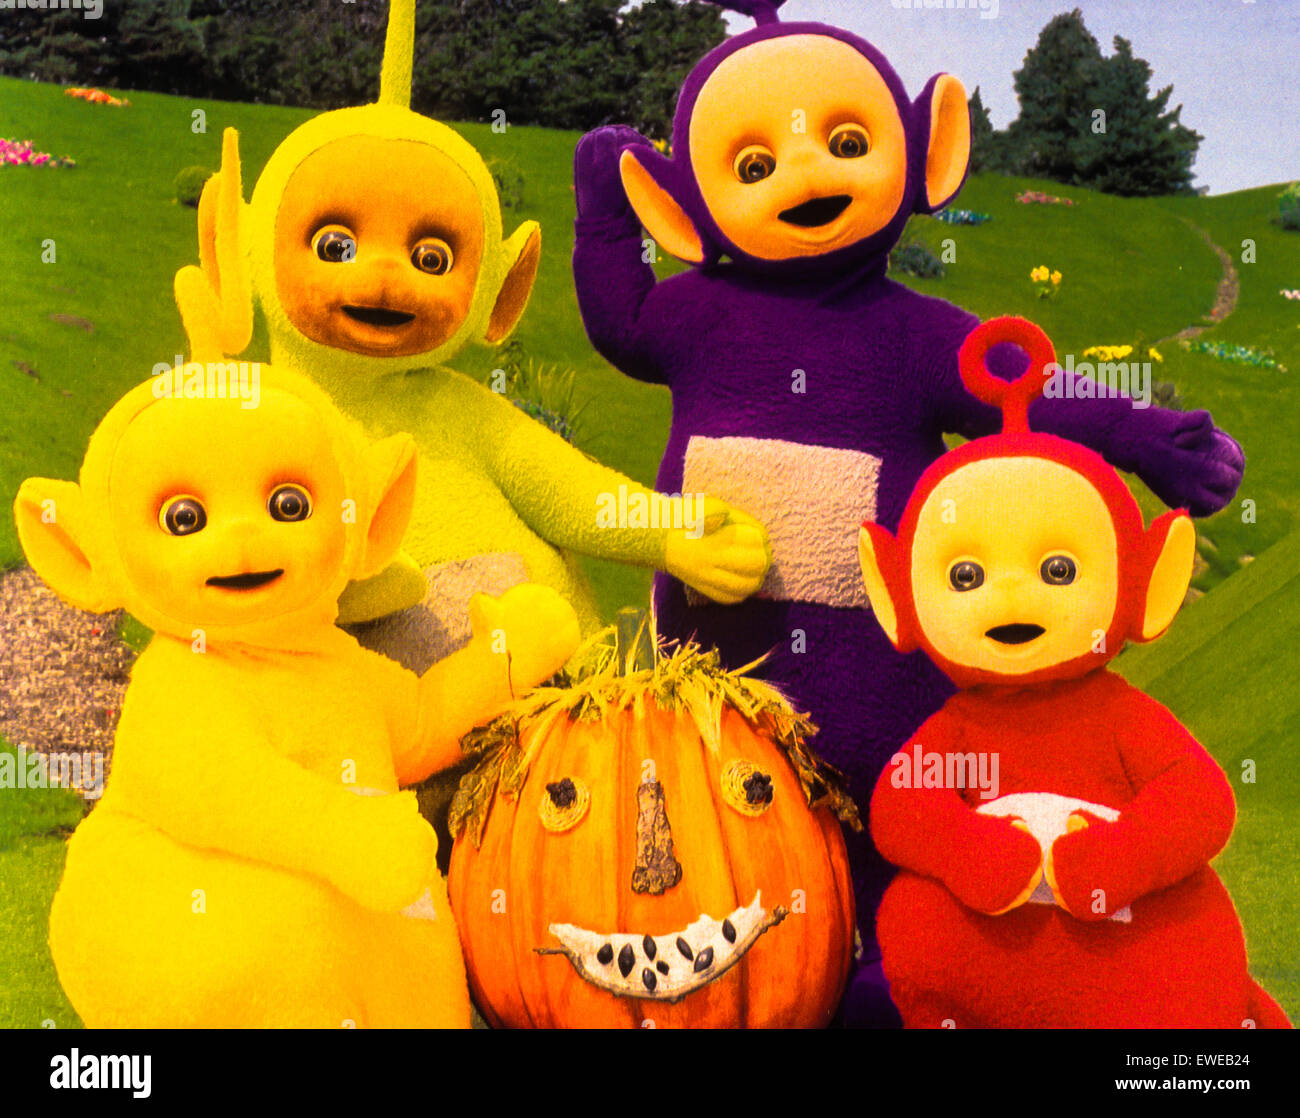 teletubbies stock image